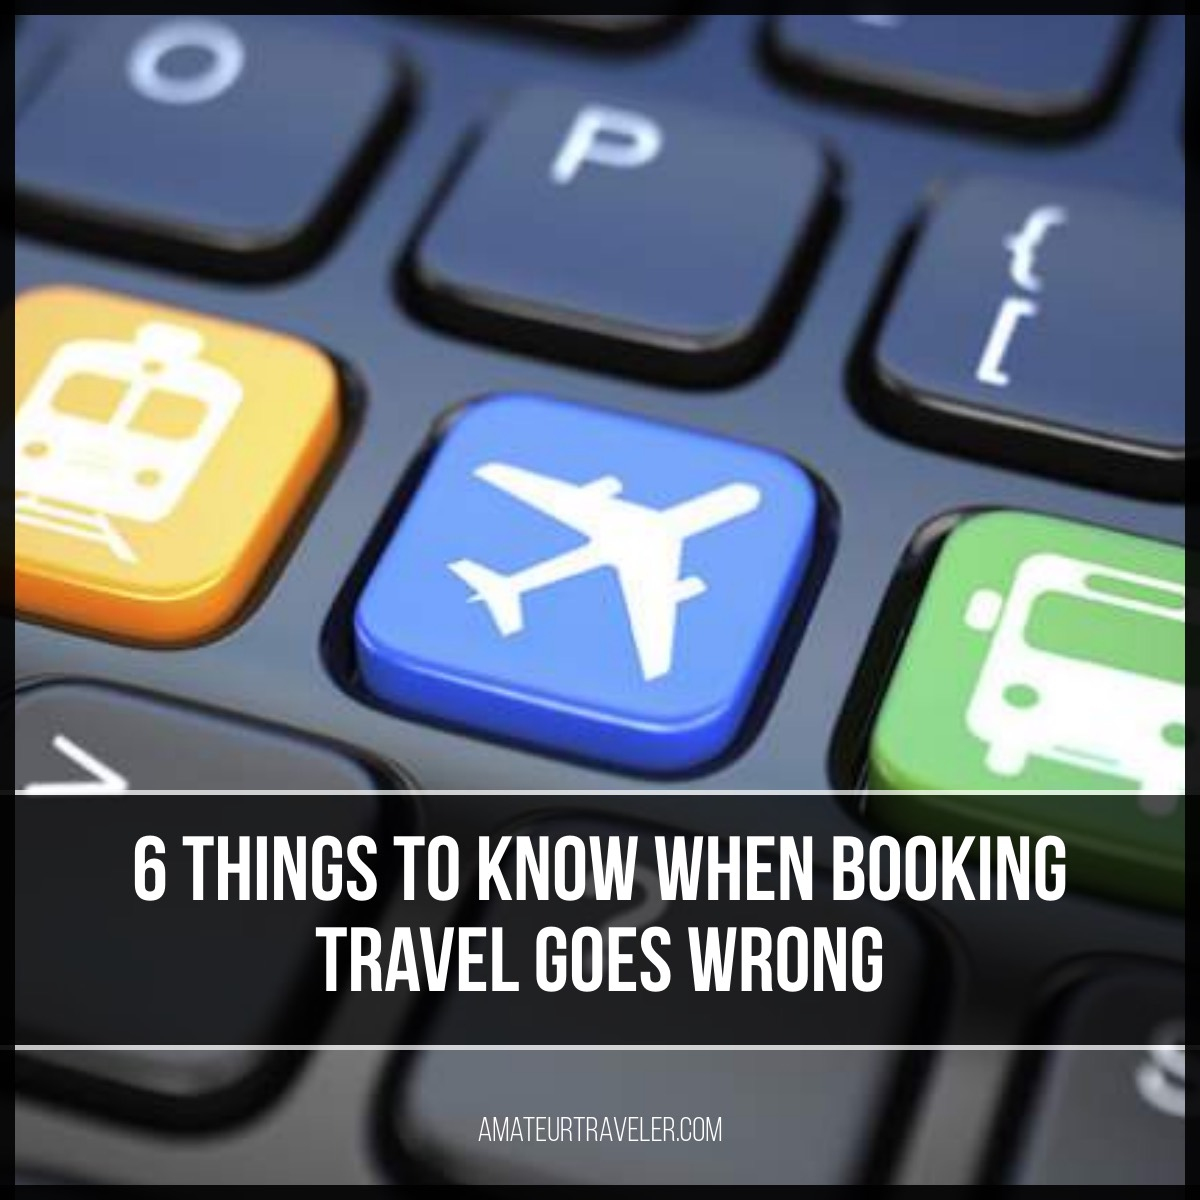 6 Things to Know When Booking Travel Goes Wrong